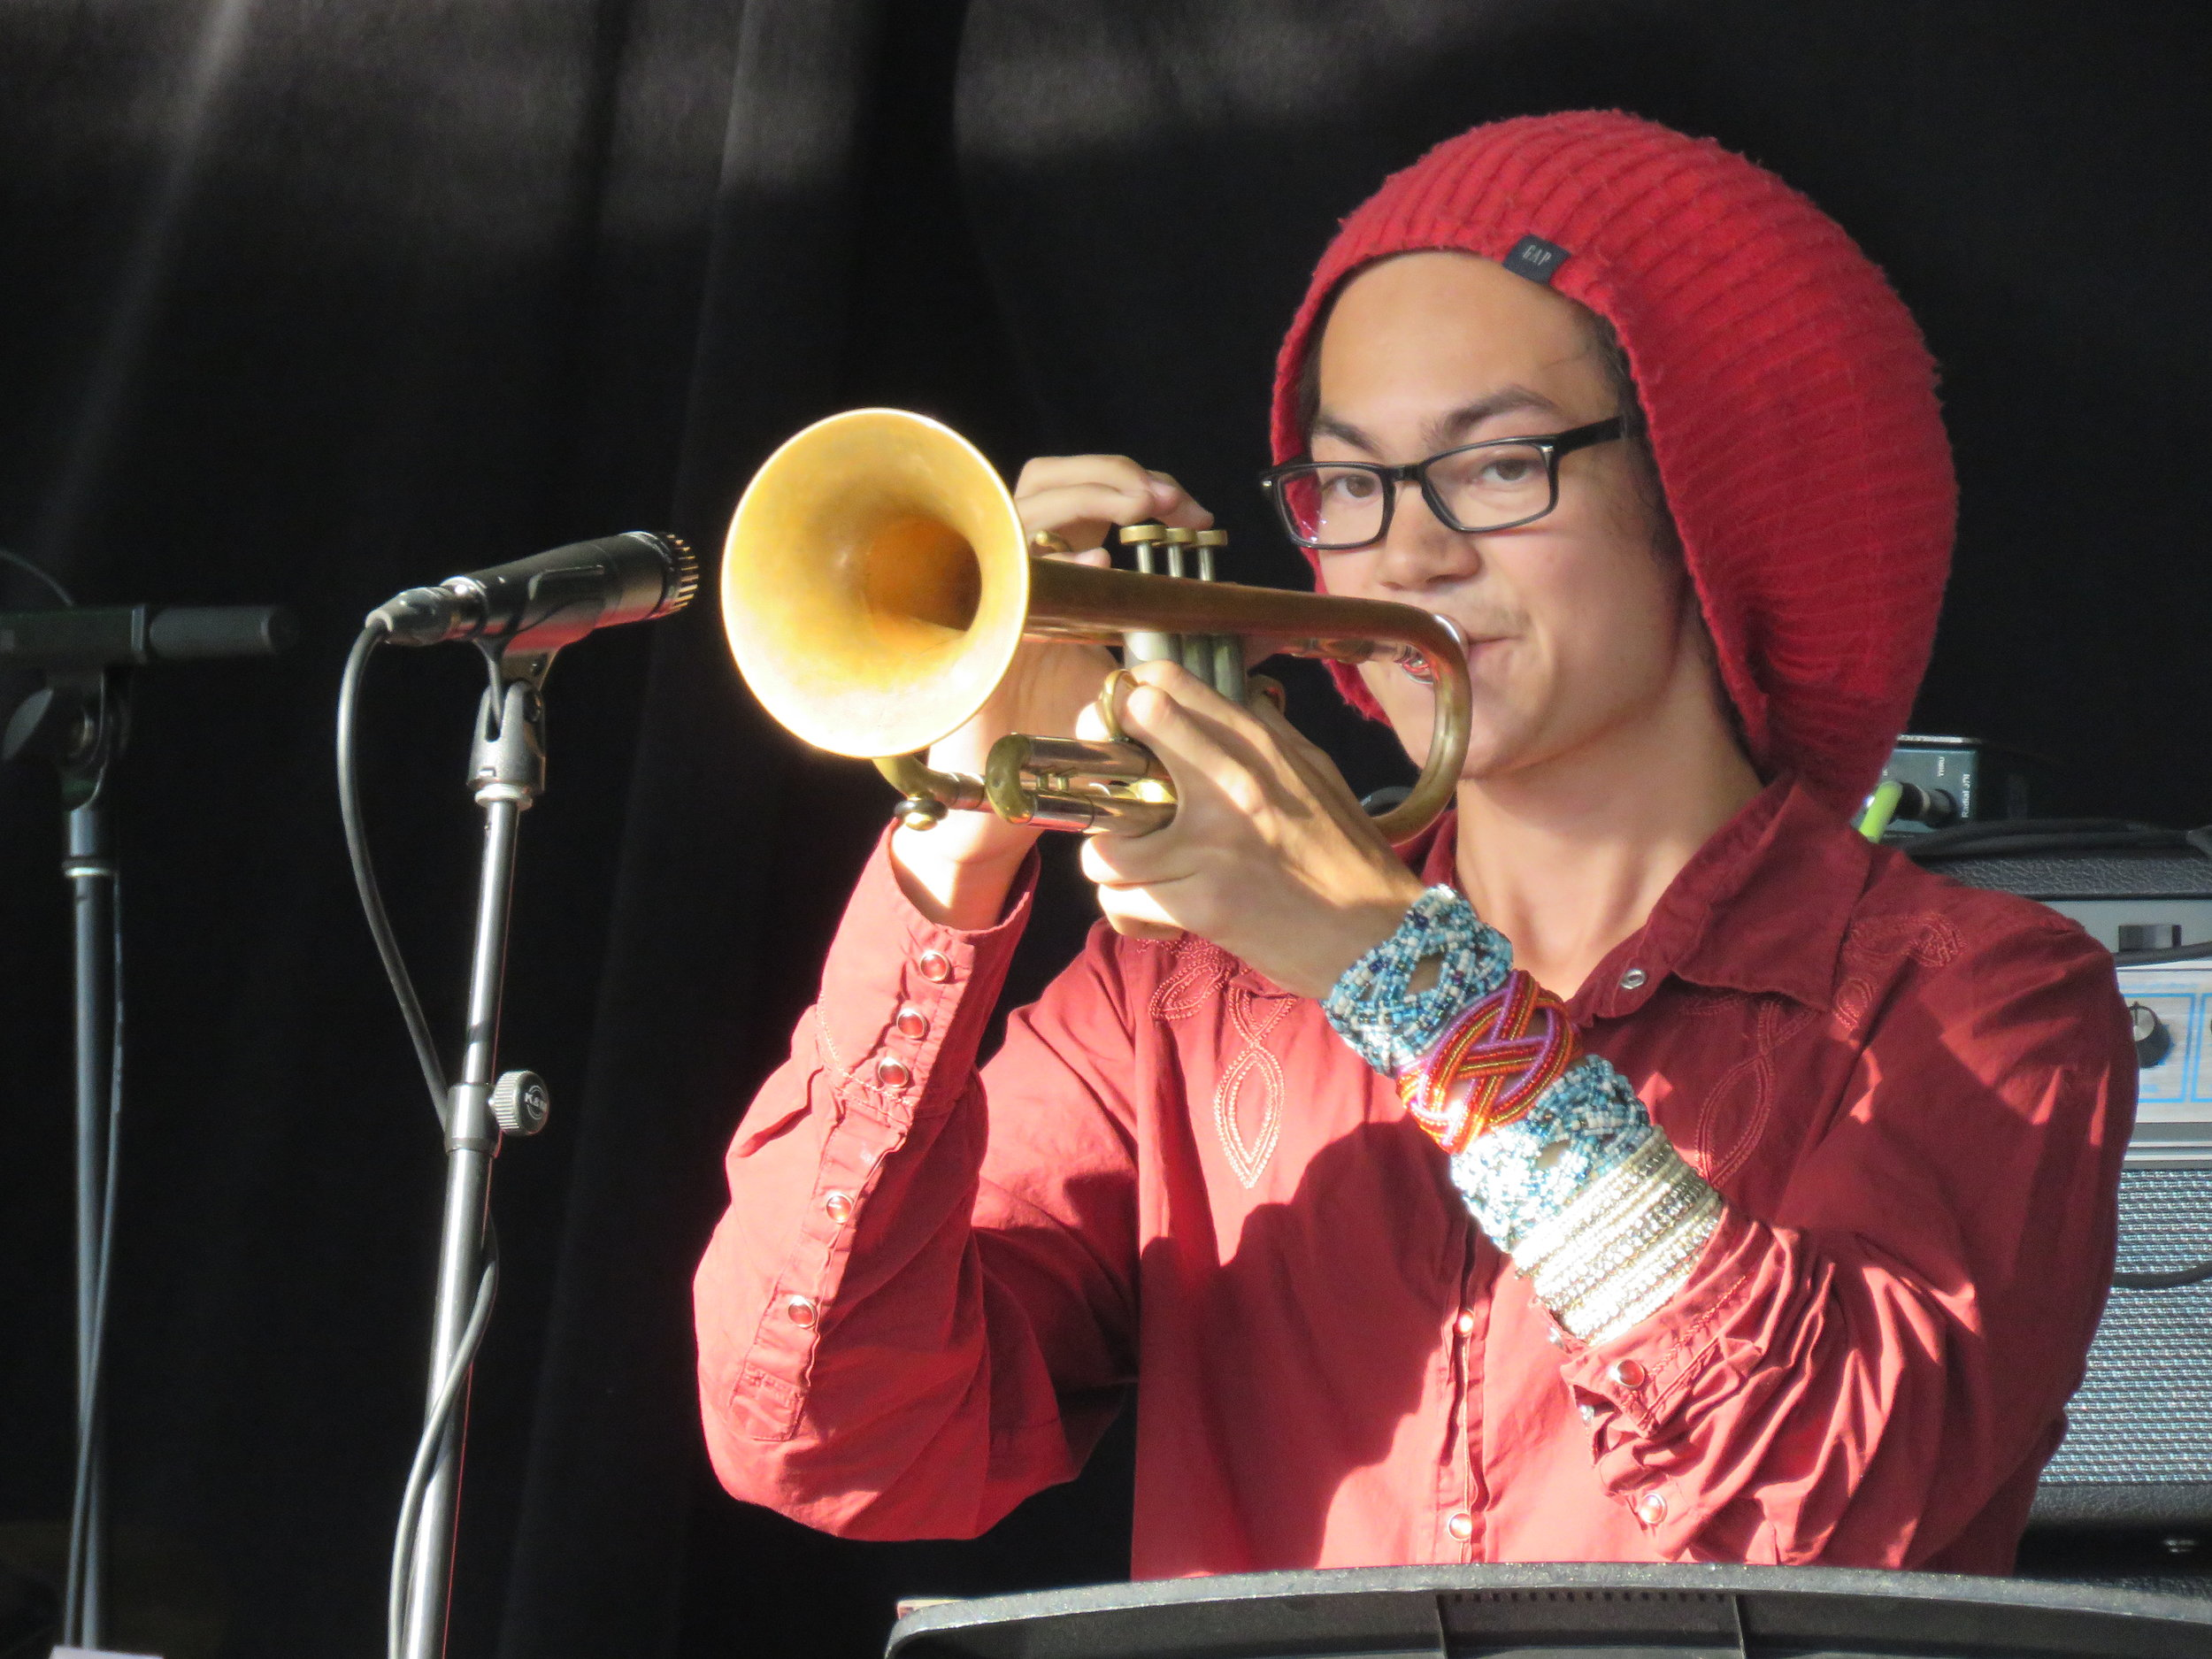 Kaelin Murphy, likely killing it on the trumpet, pictured.